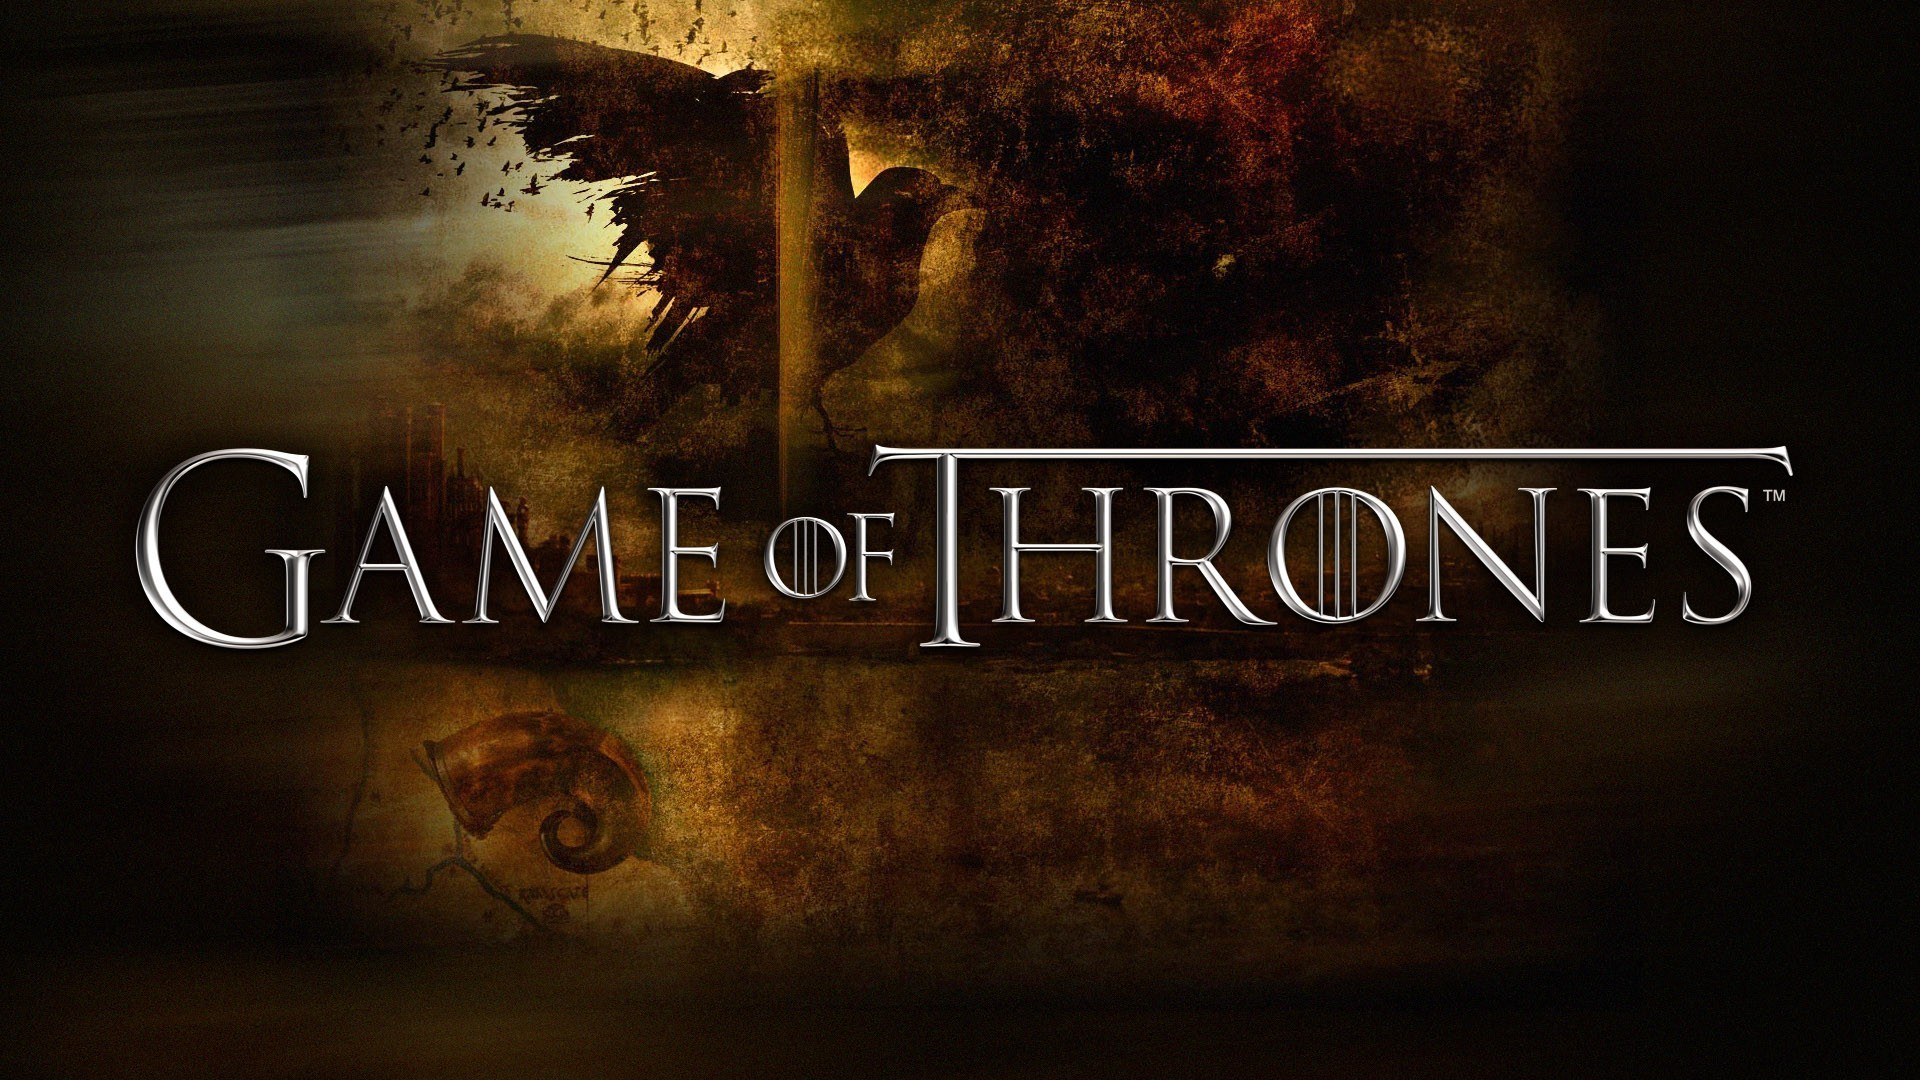 1920x1080 Game of thrones crows tv series hbo wallpaper